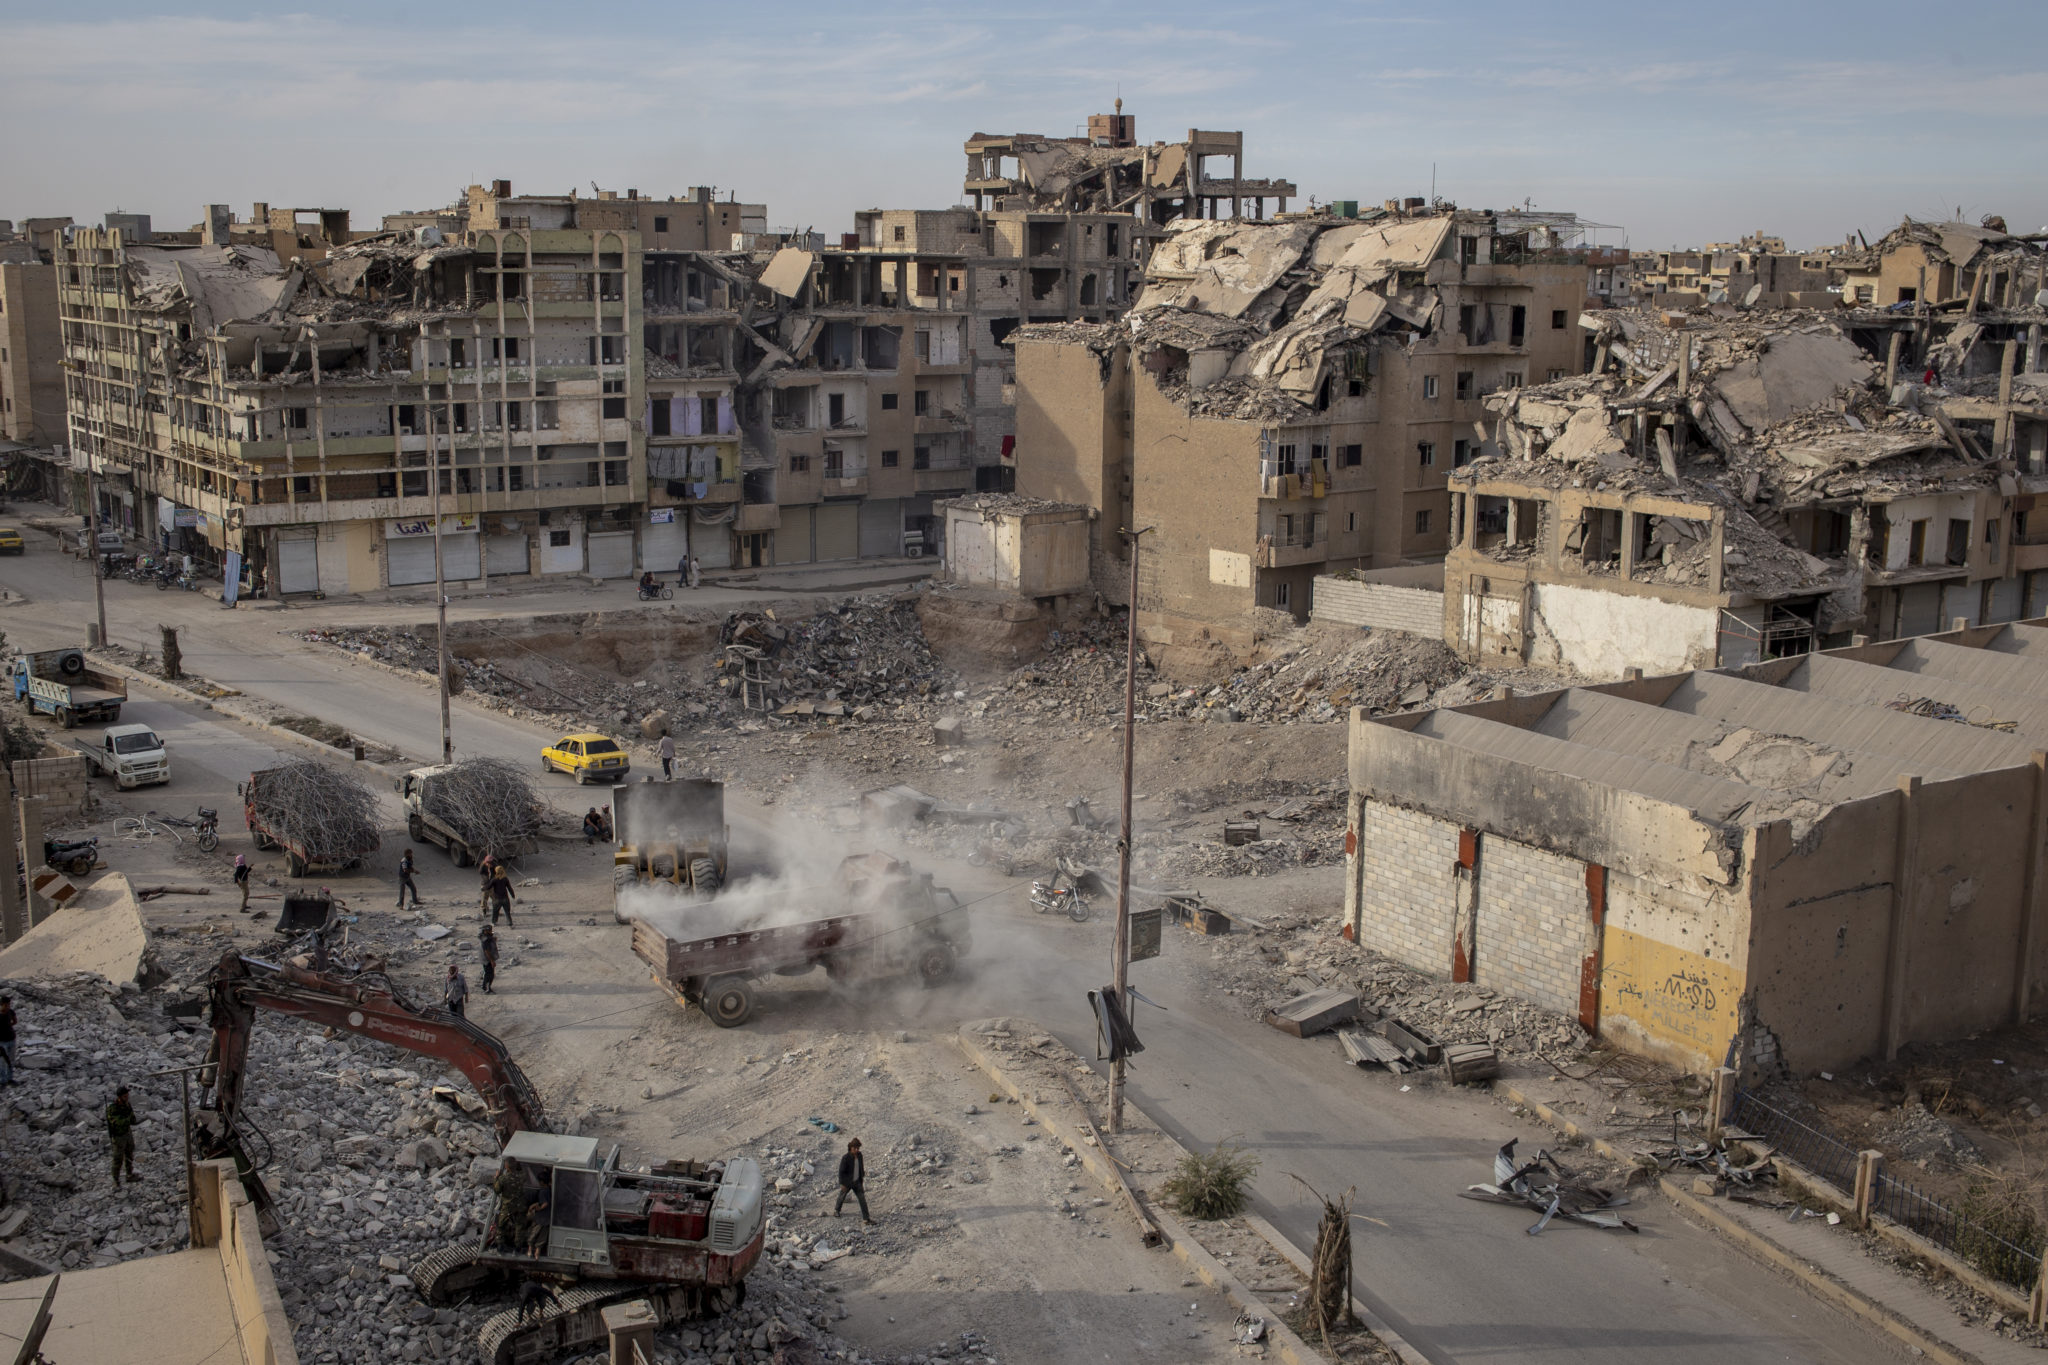 UN: Catastrophic failure as civilians ravaged by war violations 70 years after Geneva Conventions